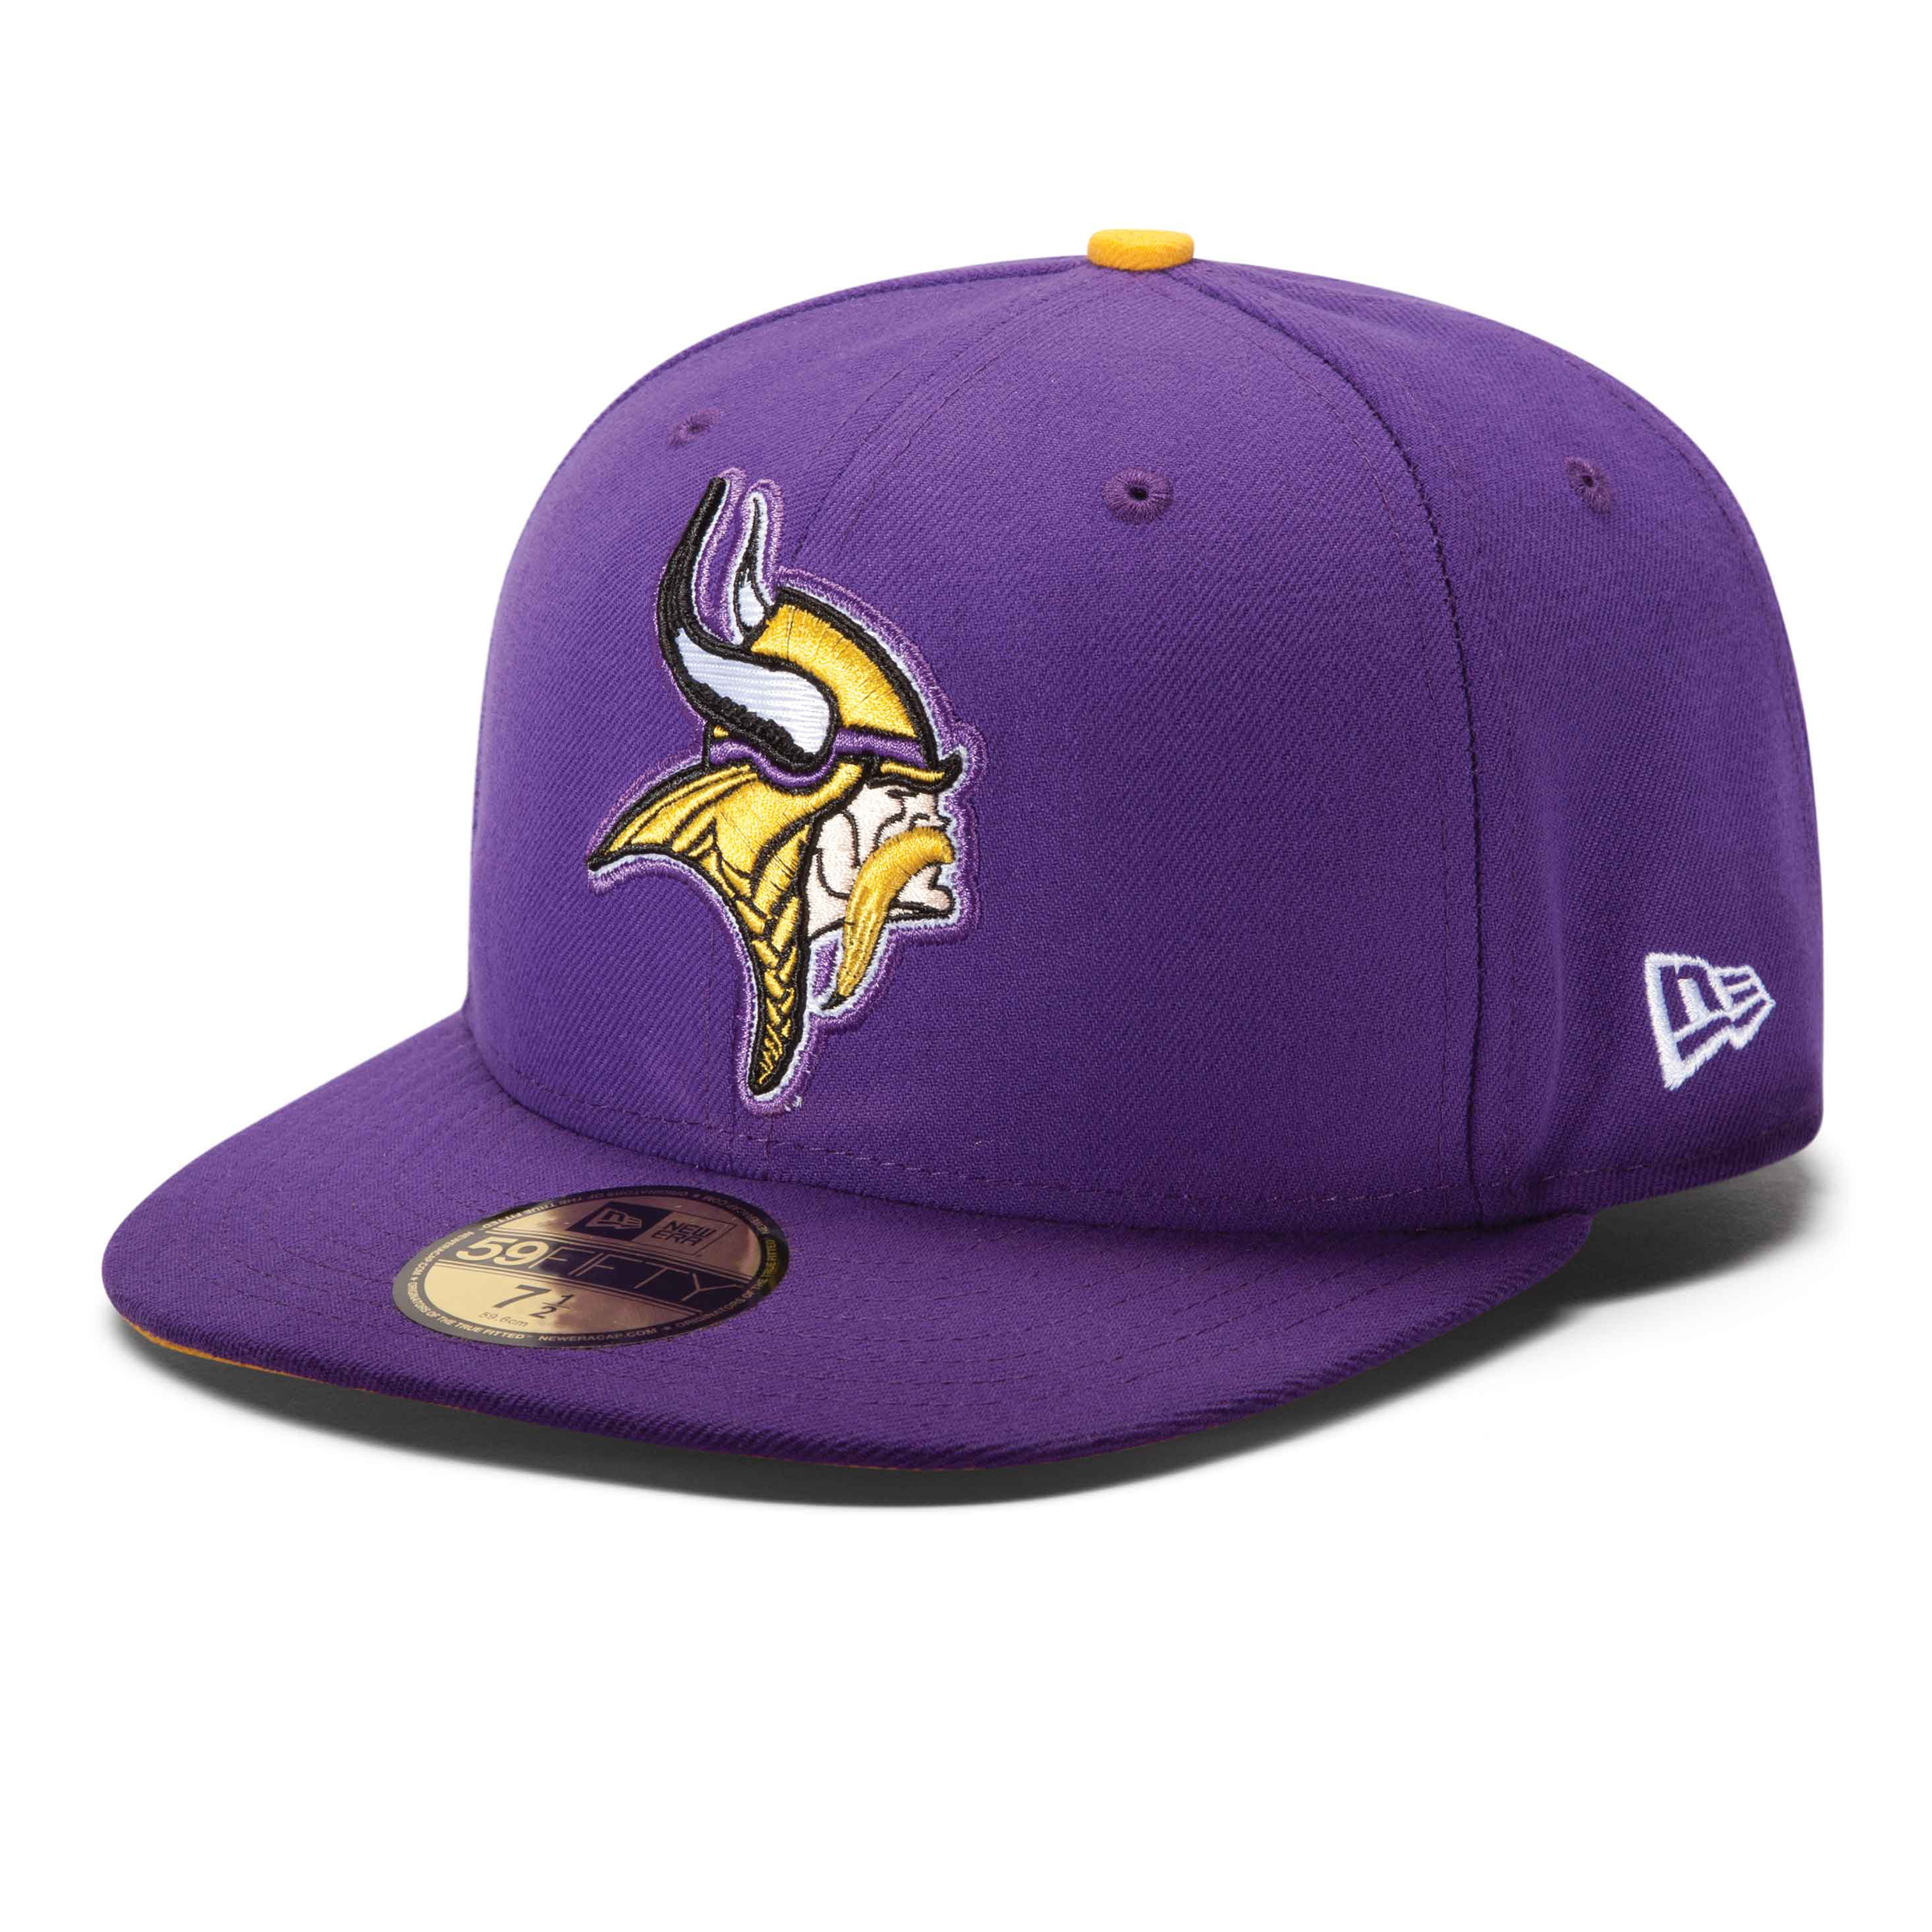 Minnesota Vikings New Era 59FIFTY Fitted On-Field Cap